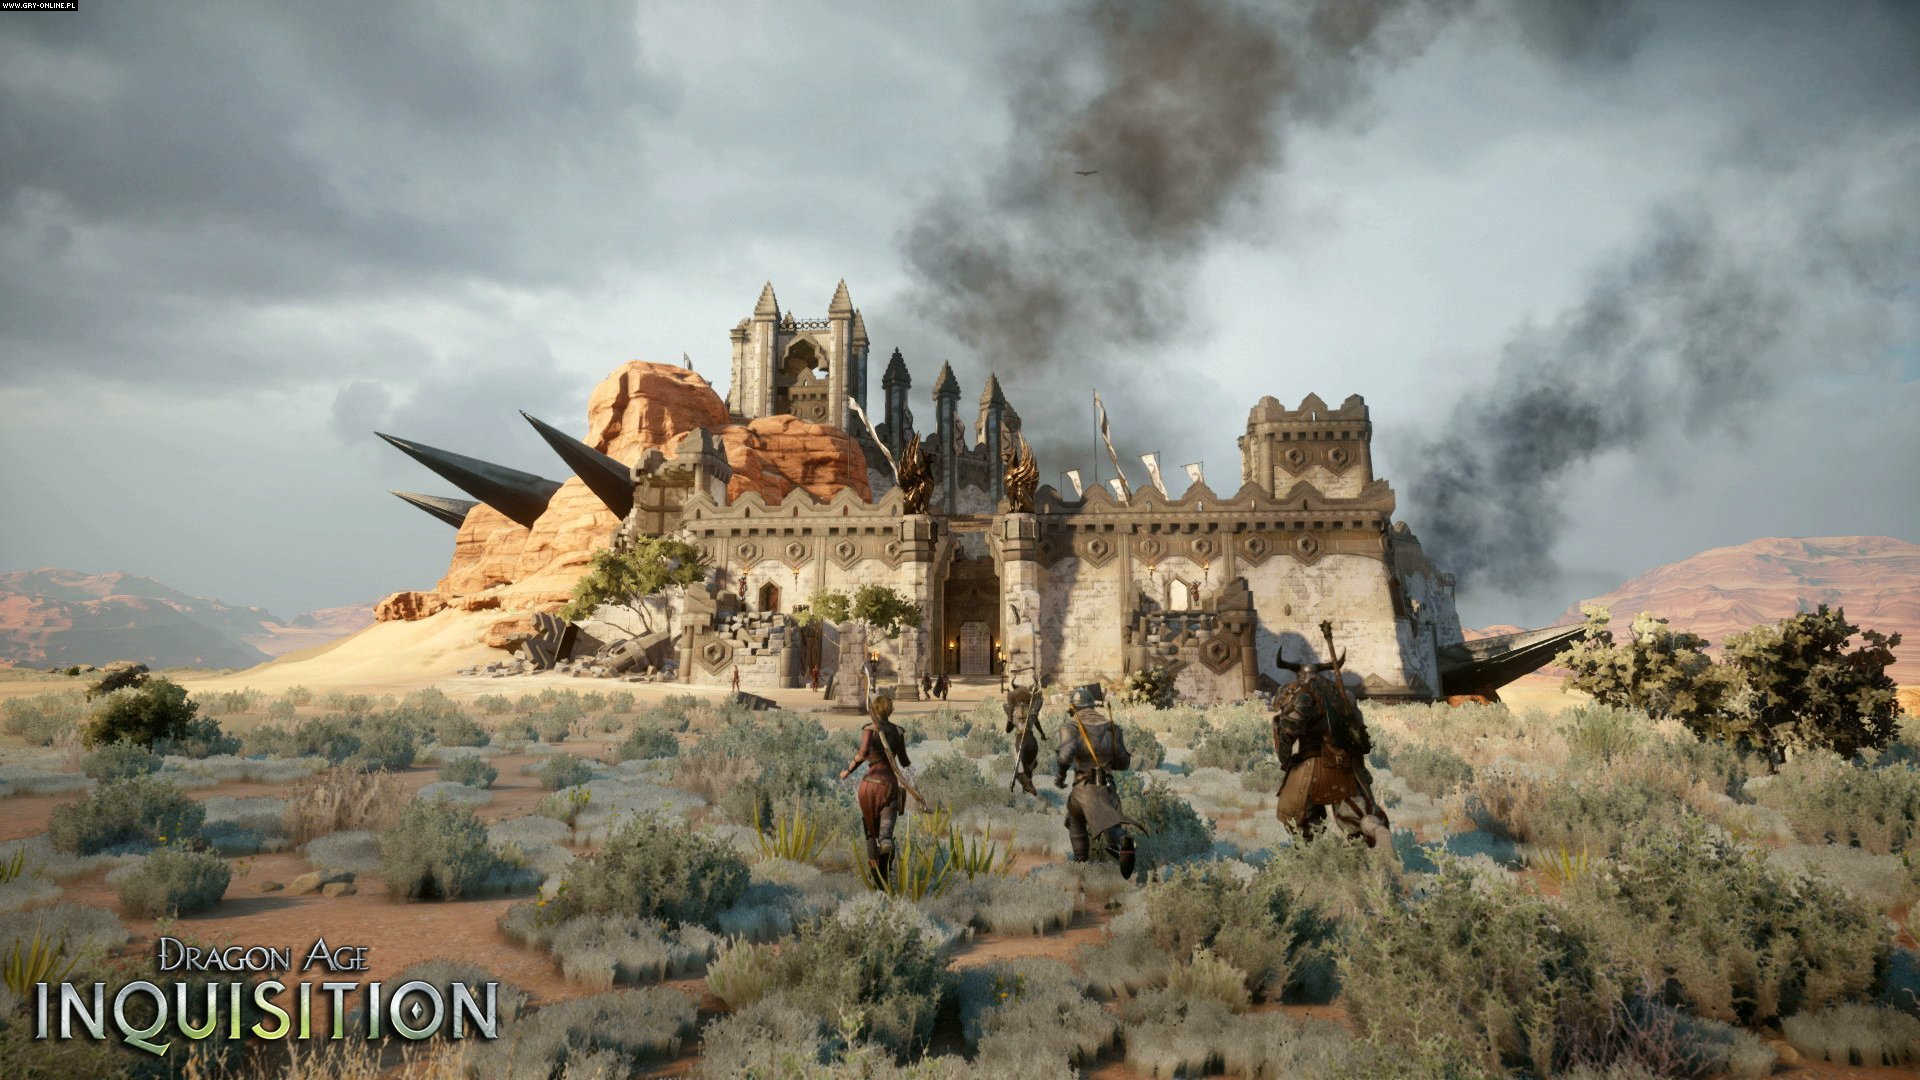 Dragon Age: Inquisition PC, X360, PS3, PS4, XONE Games Image 169/225, BioWare Corporation, Electronic Arts Inc.